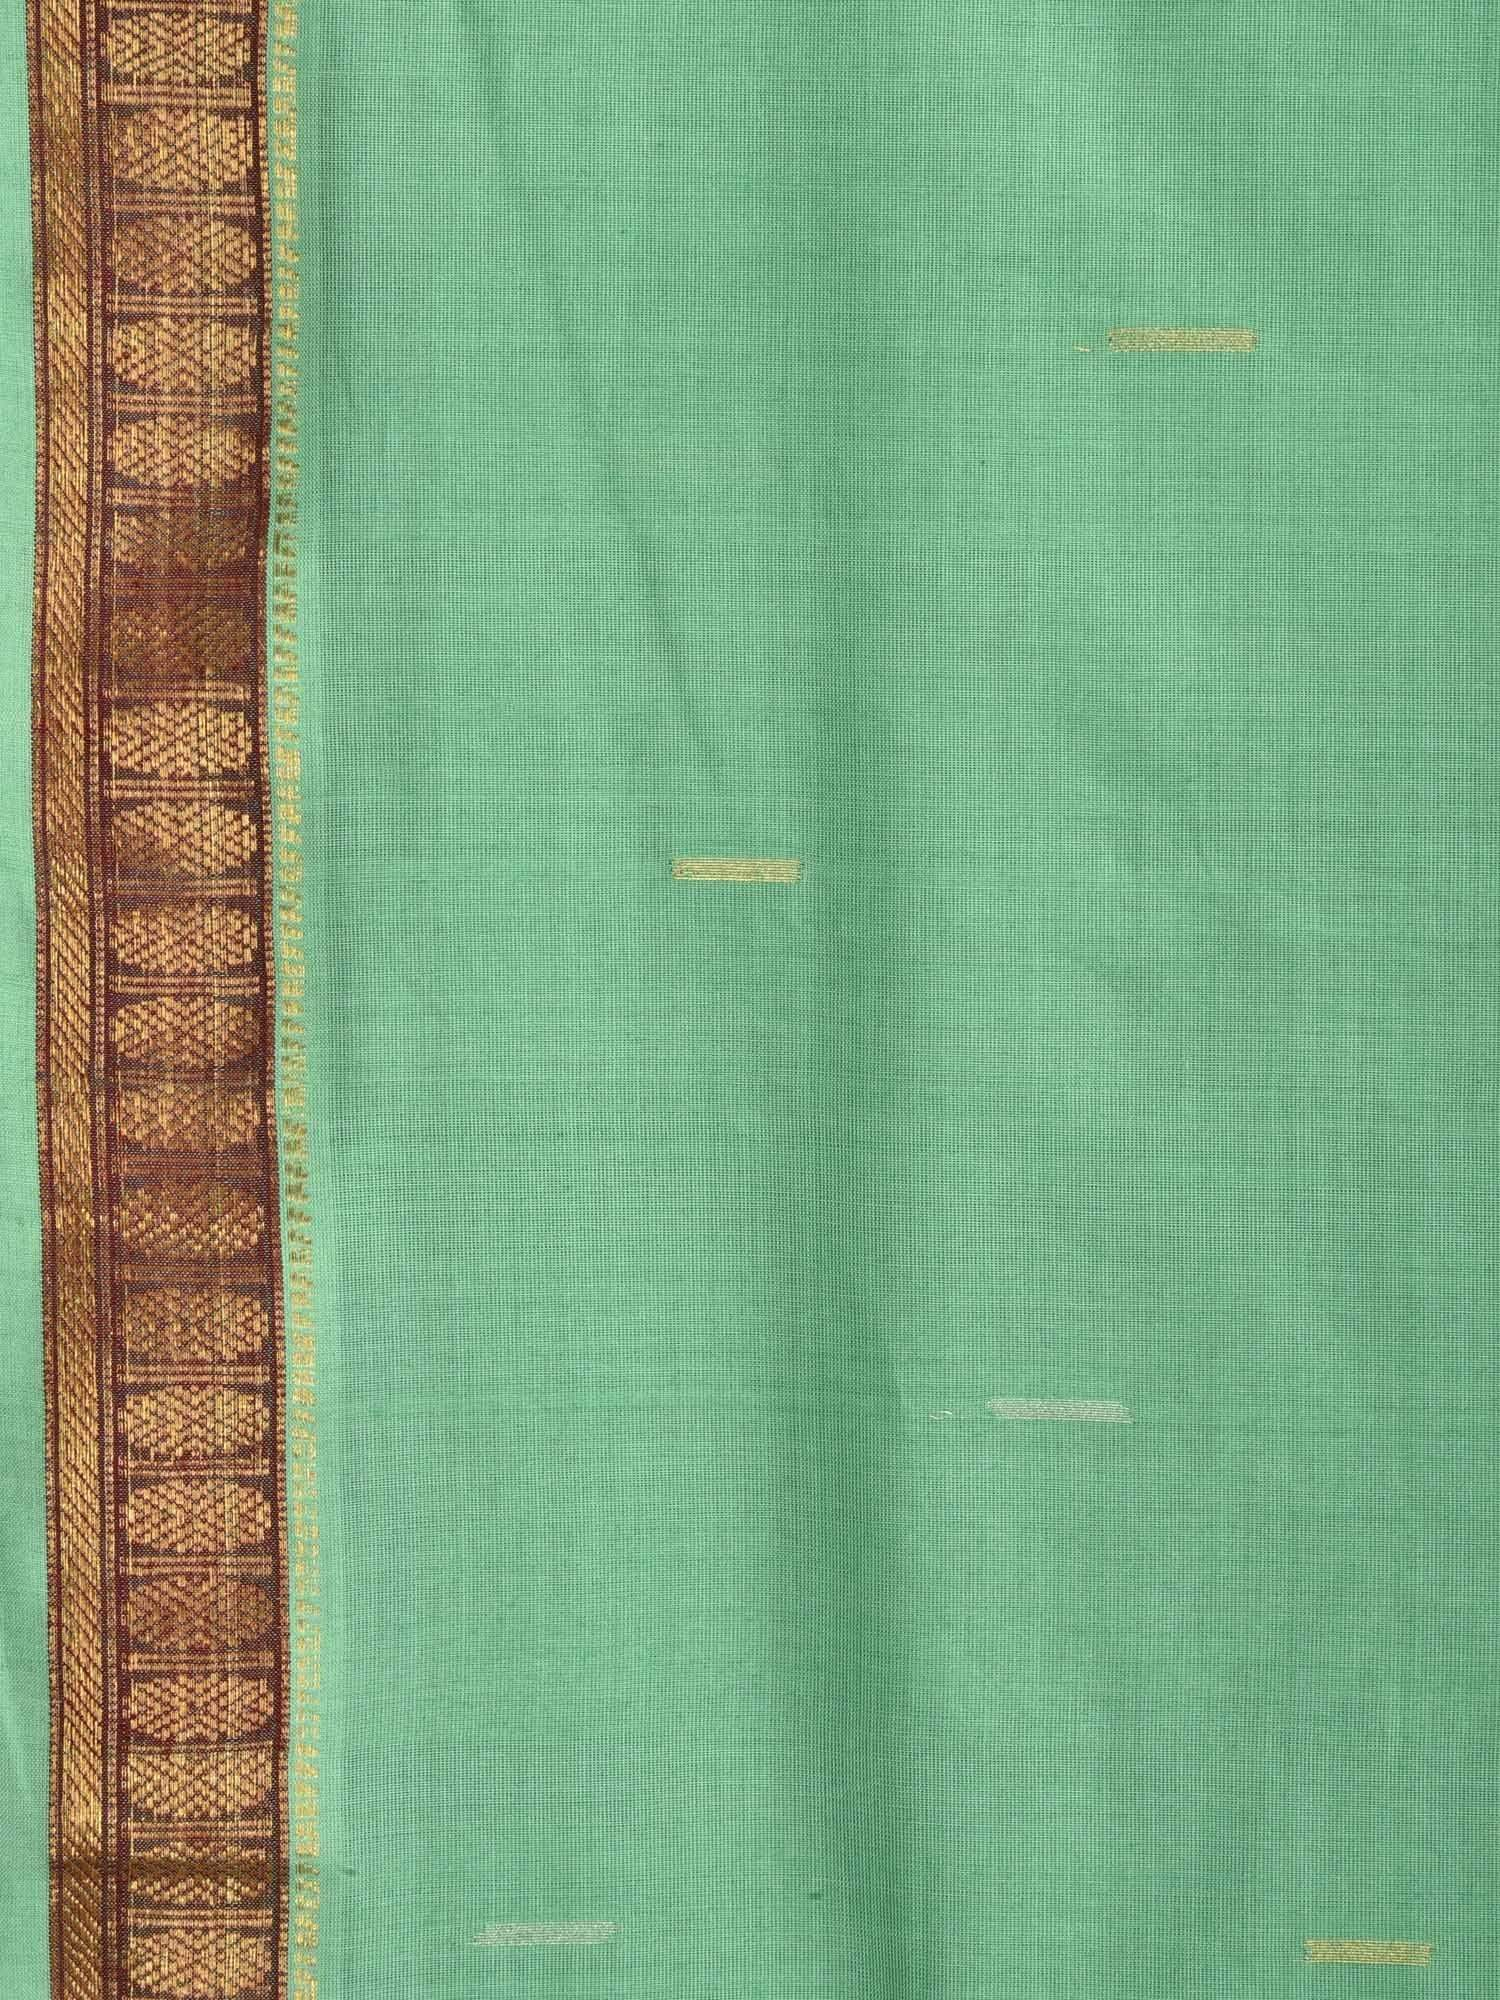 Sea Green Khadi Cotton Handloom Saree with Doby Border and Zari Strips Pallu Design kh0427